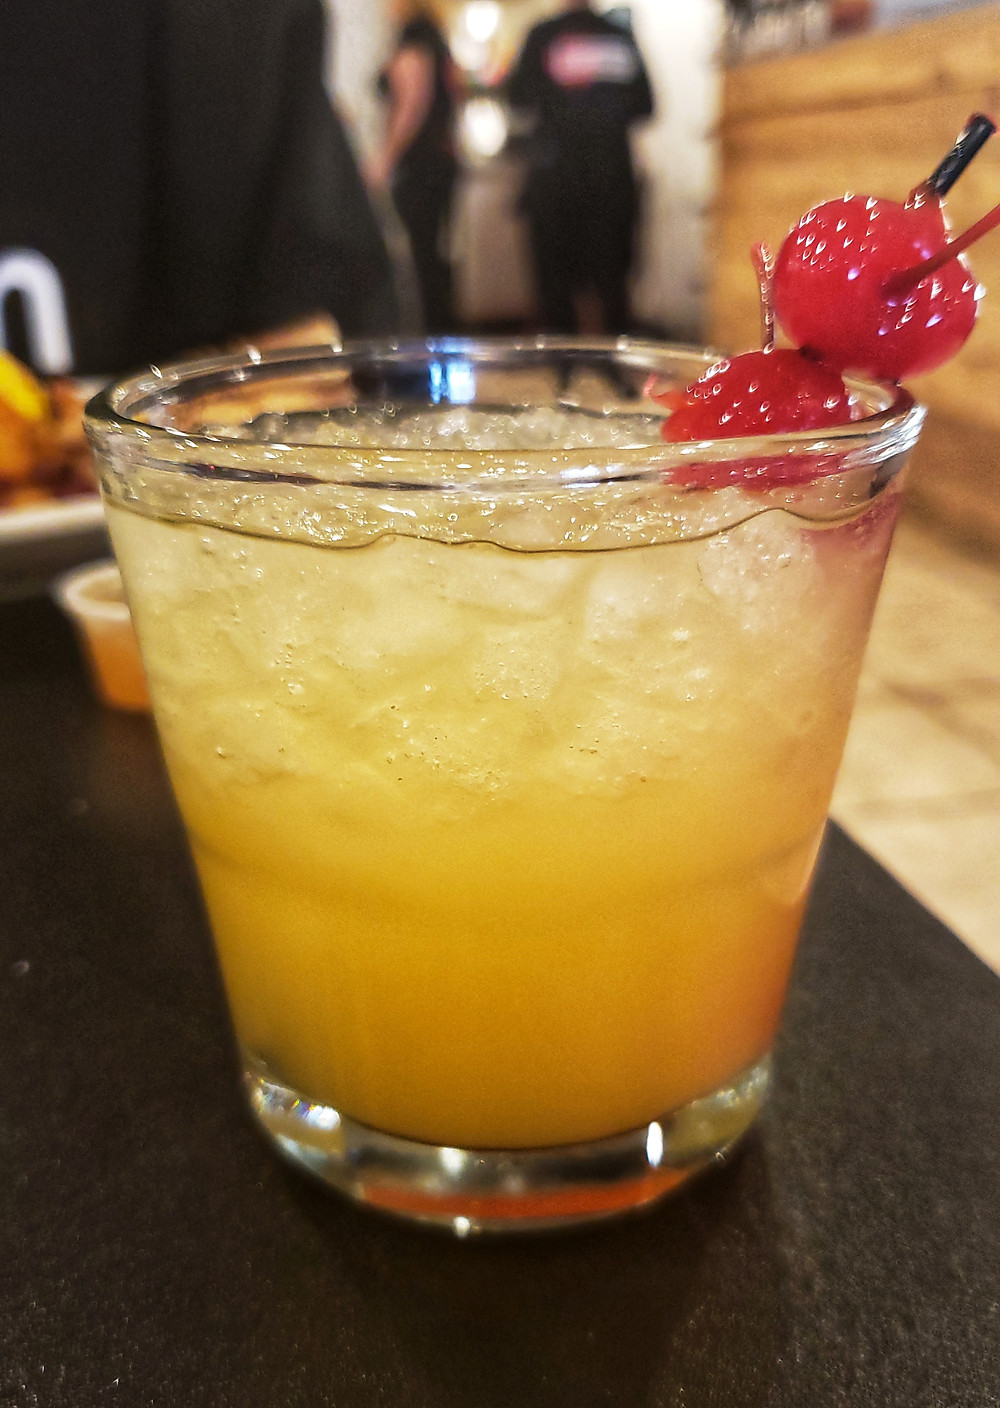 The Sasquatch was a great brunch drink. Definite recommendation!